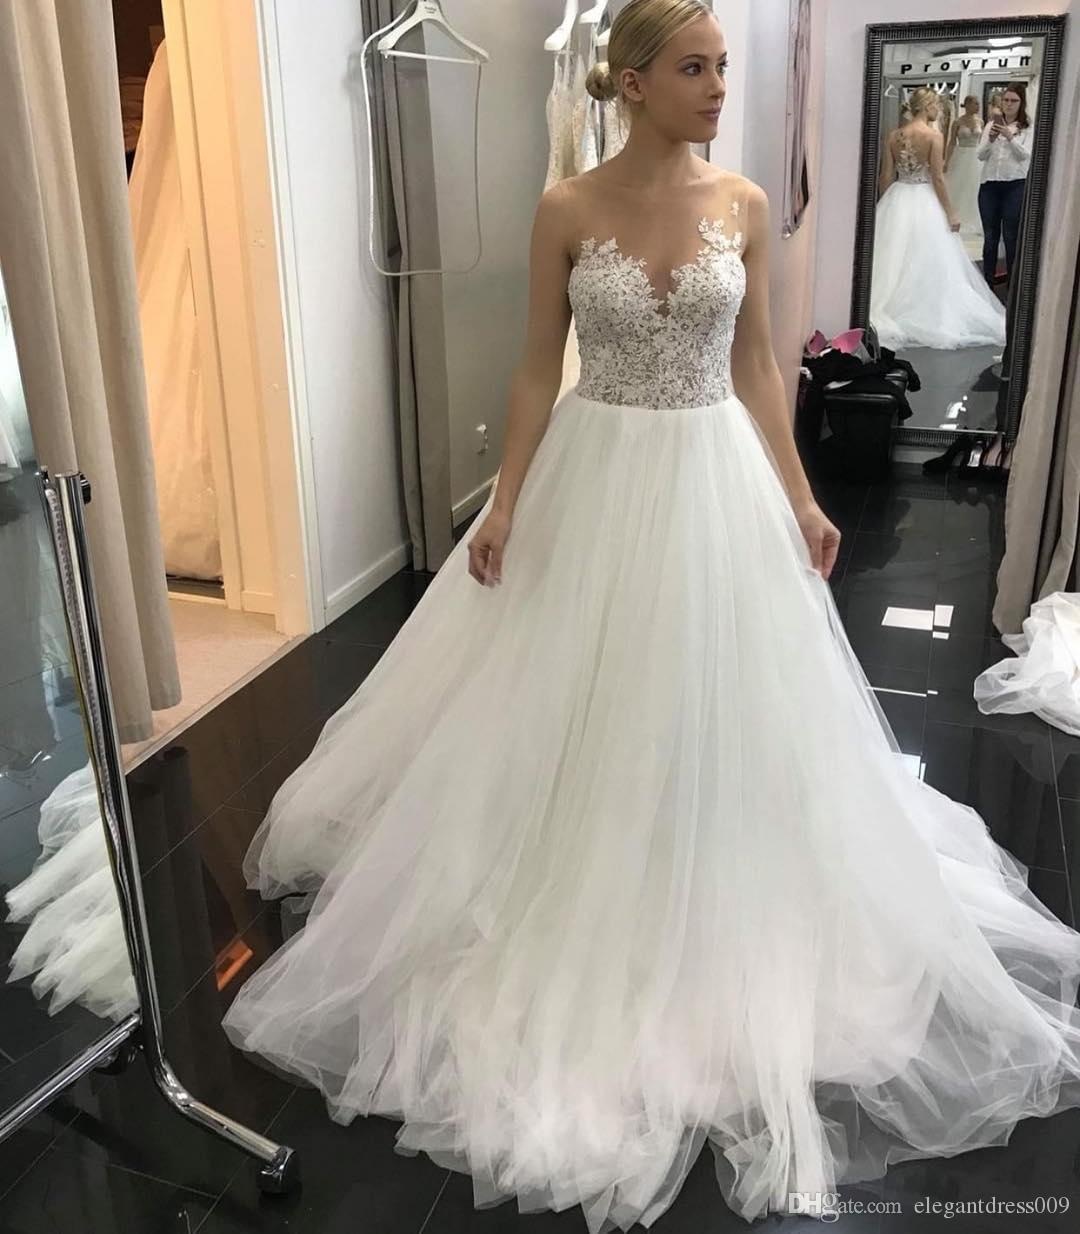 Sexy Romantic Boho Beach A Line Country Wedding Dresses Sheer Neck Lace Applique Illusion Back Sweep Train Wedding Dress Bridal Gowns